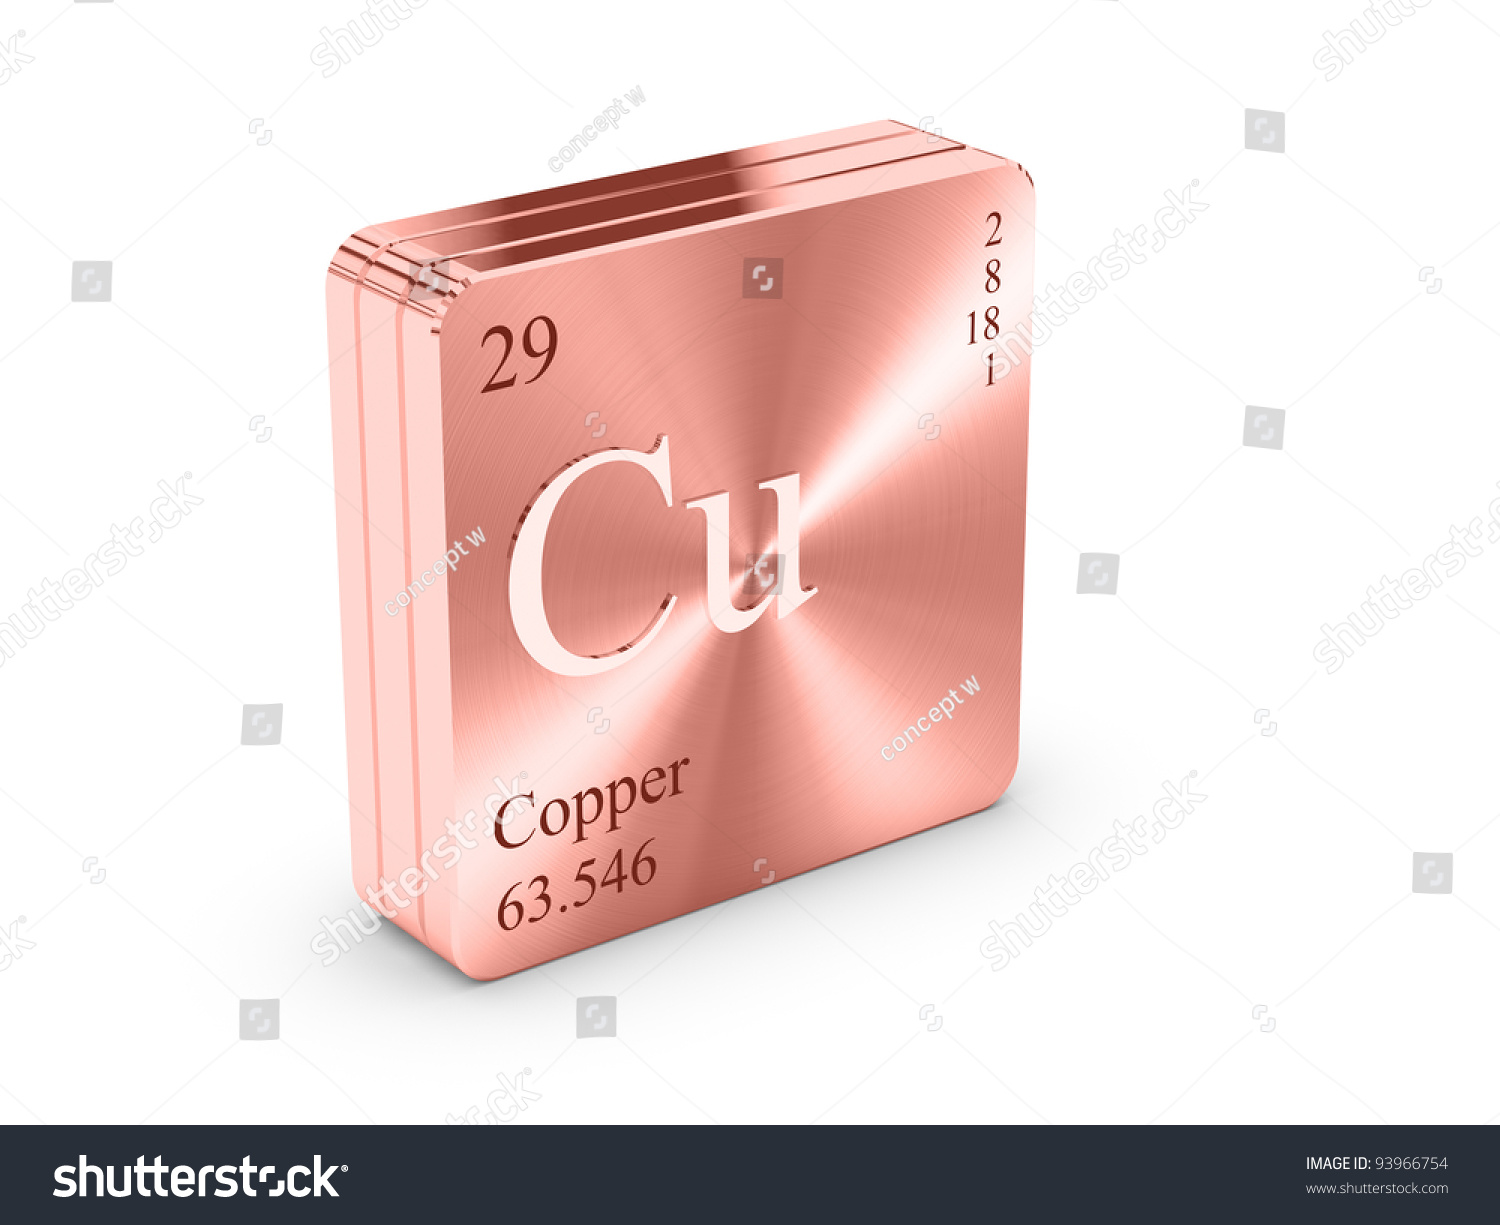 Copper Element Periodic Table On Copper Stock Illustration 93966754